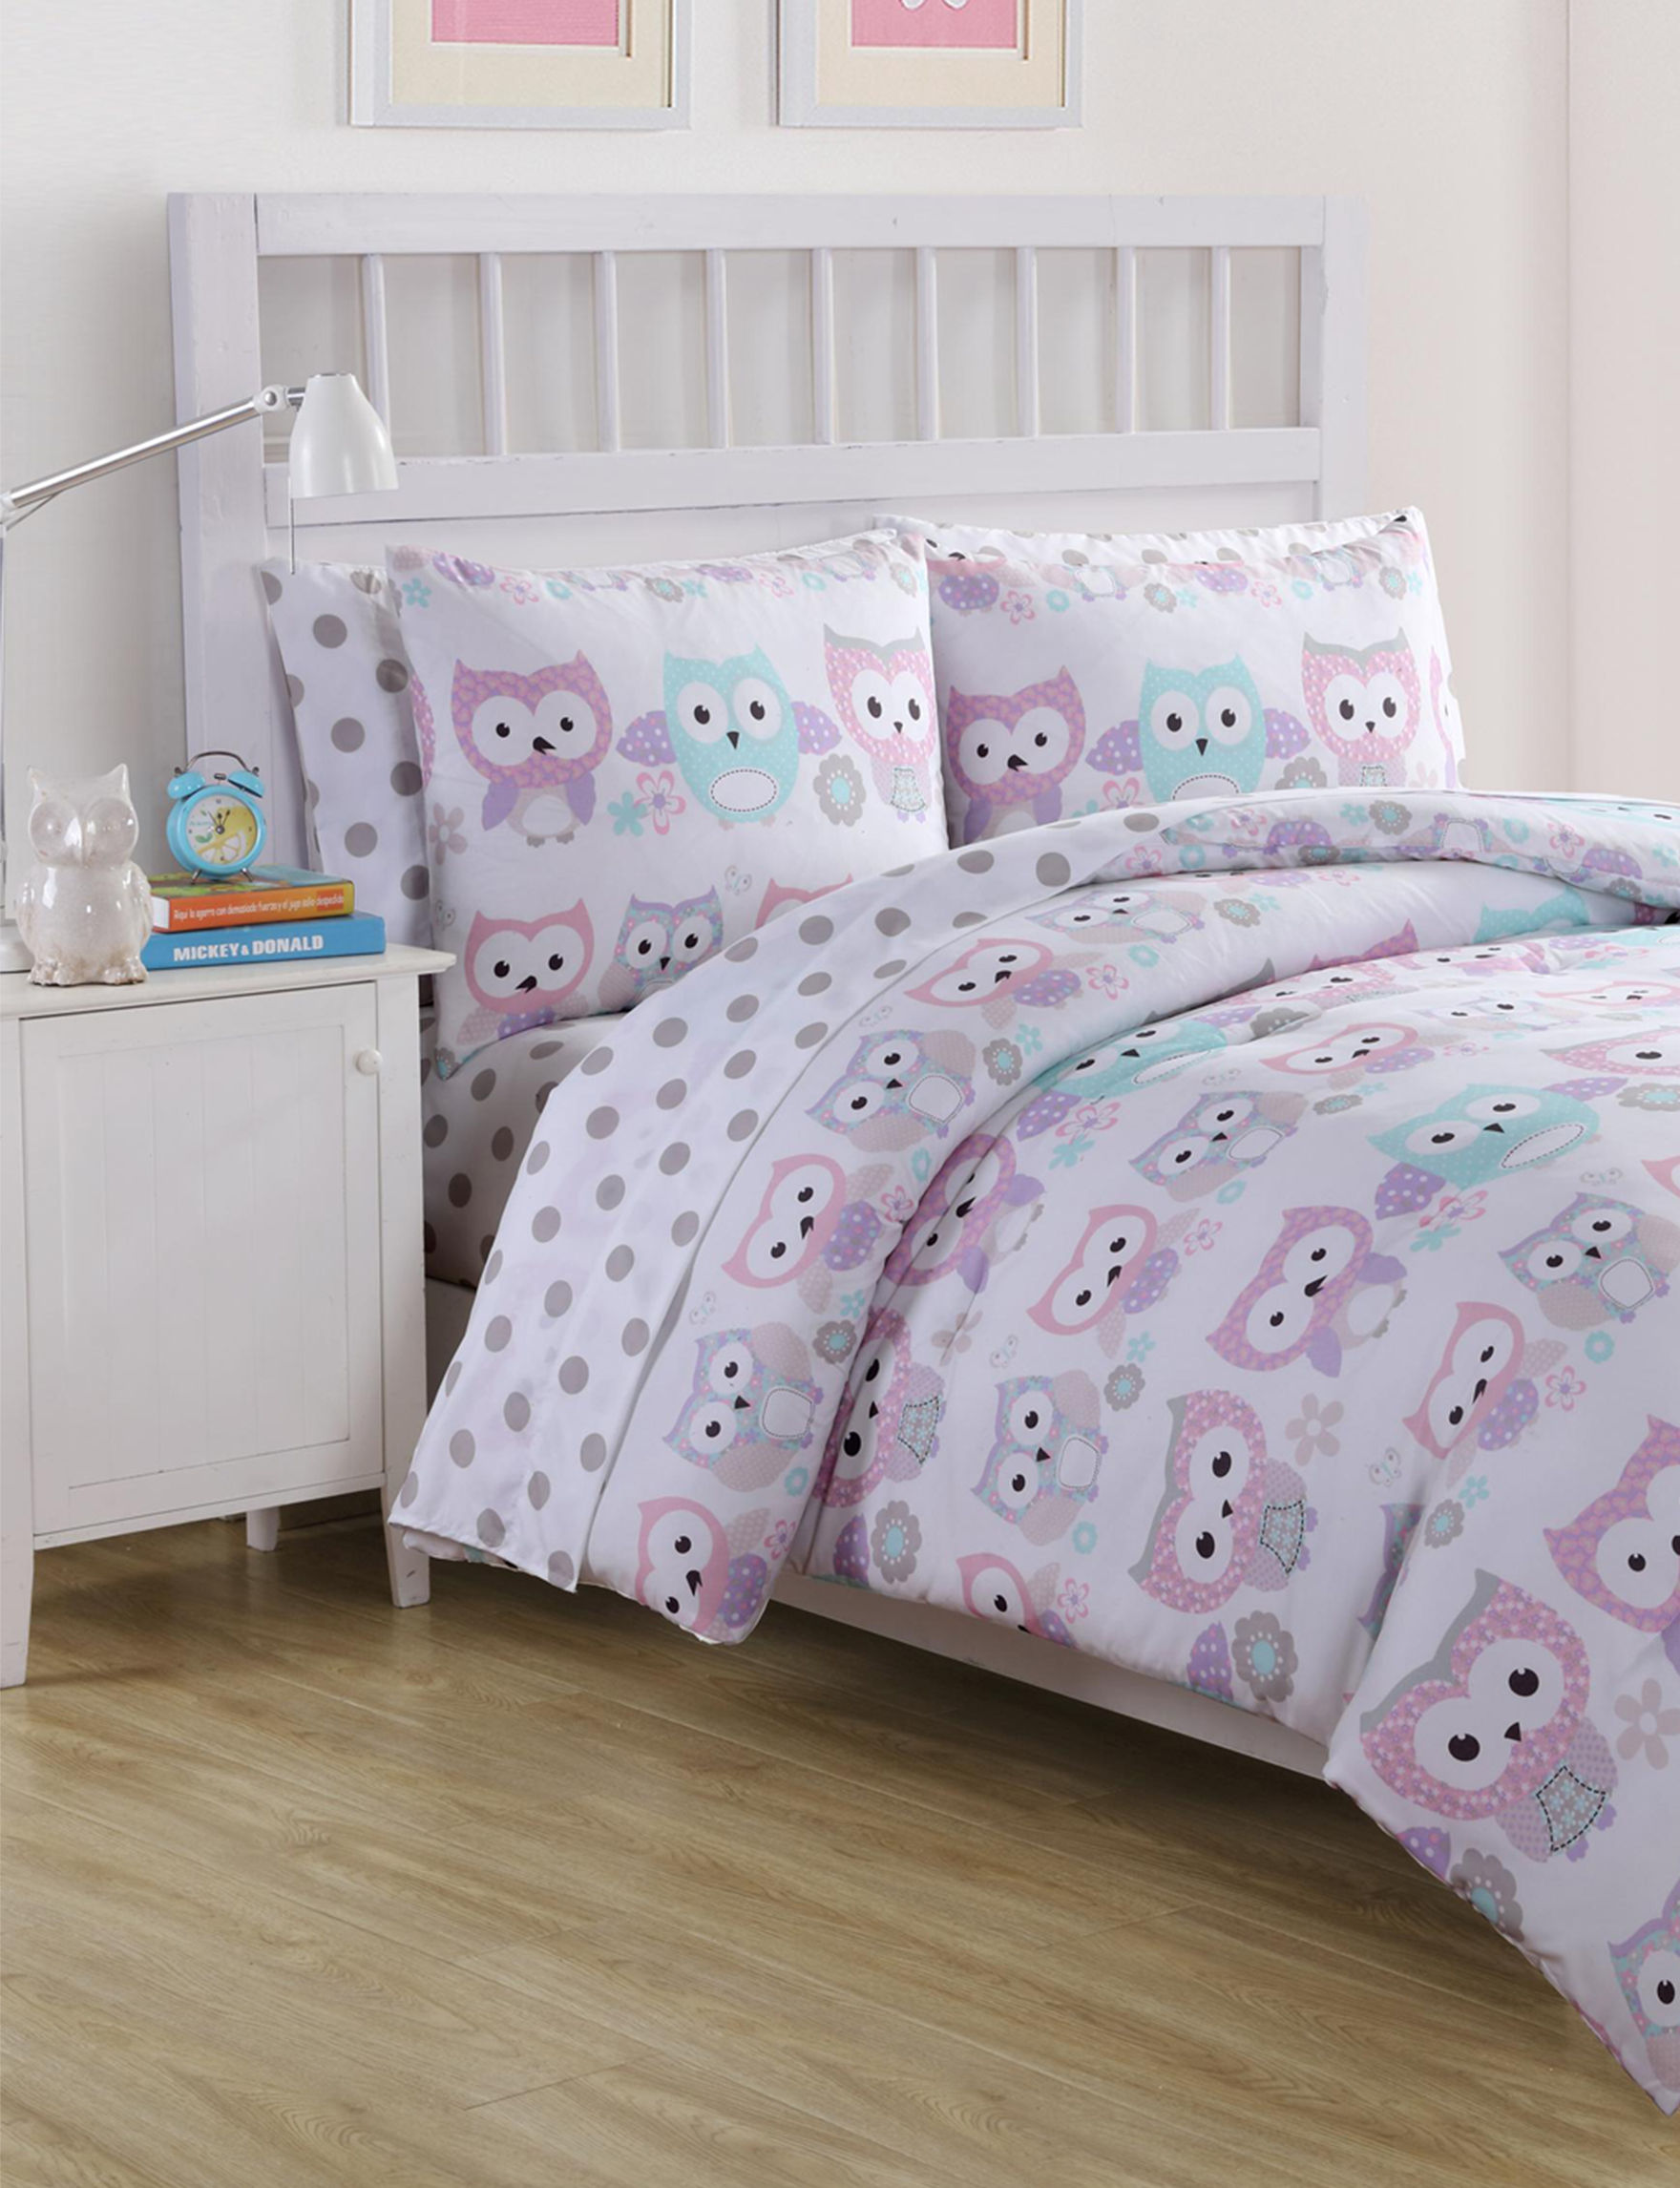 VCNY Home Pink Comforters & Comforter Sets